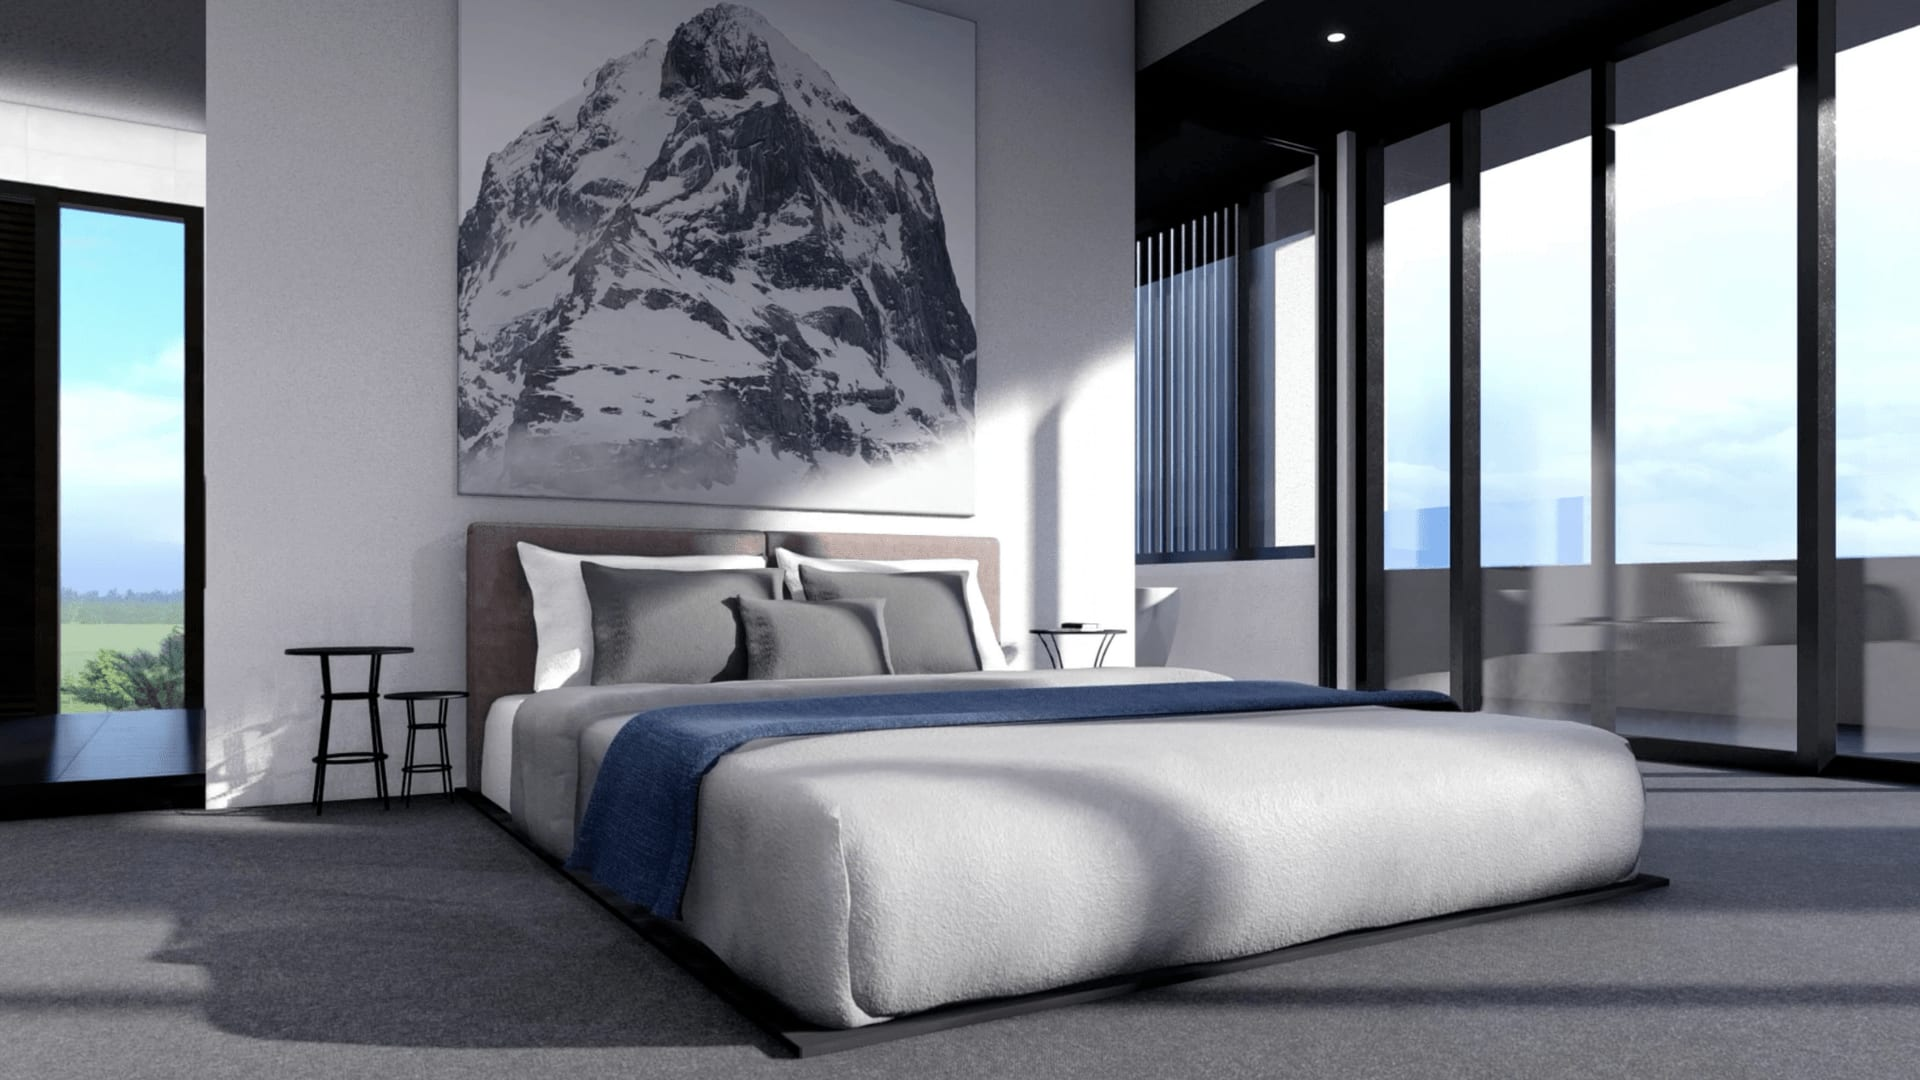 Photorealistic 3d Render of Architecturally Designed Home Bedroom from The Sanctuary Project